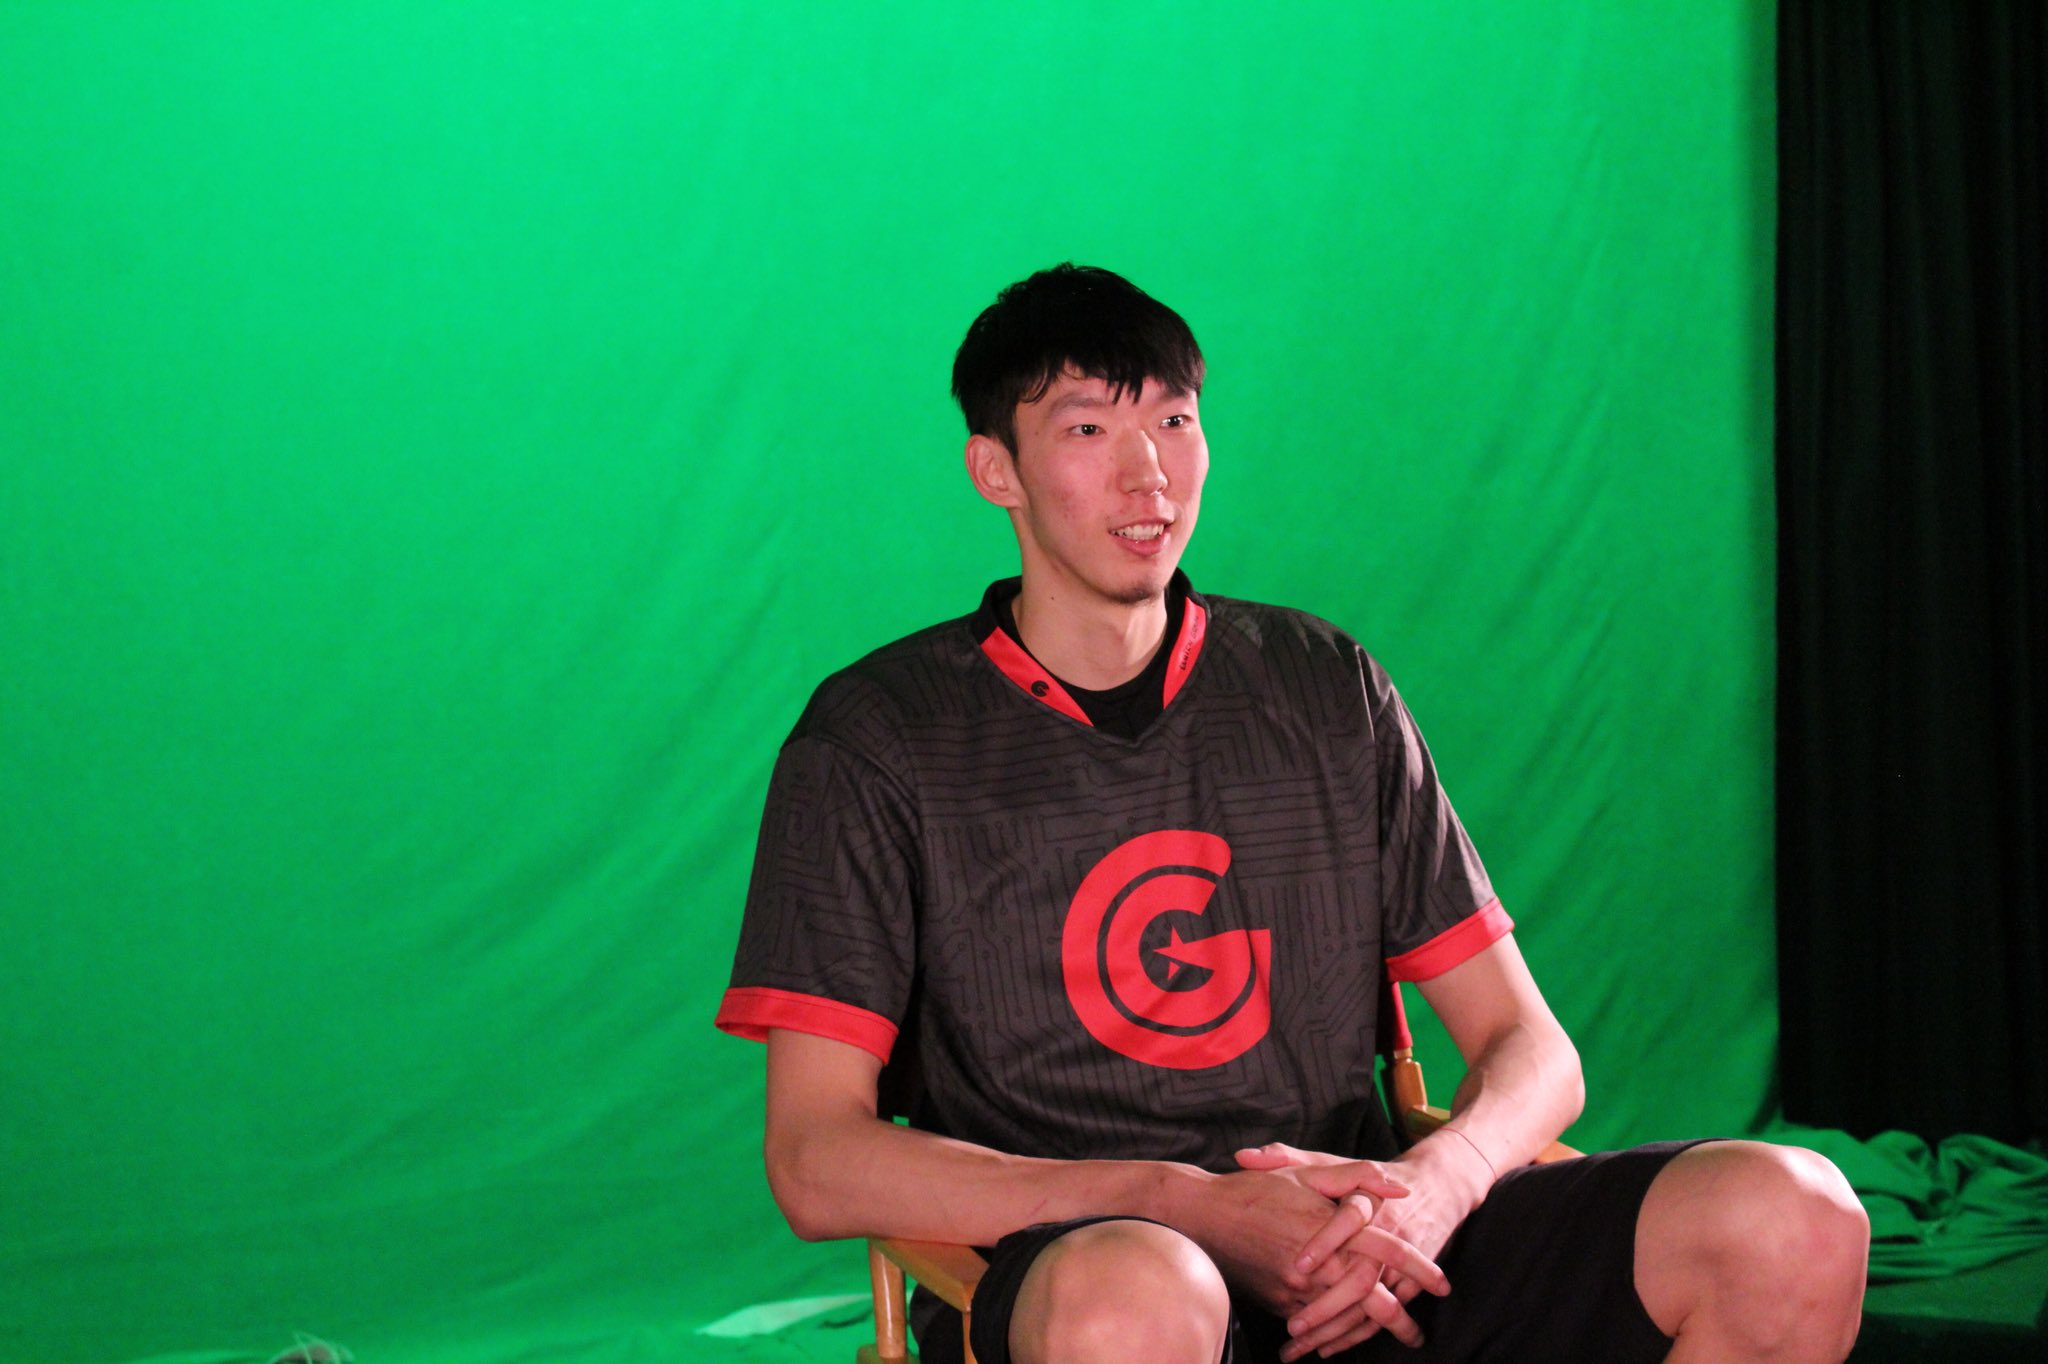 Nice jersey @officialzhouqi!  Follow our eSports team who have won 4 in a row! @ClutchGaming https://t.co/6kmmBzPdzY